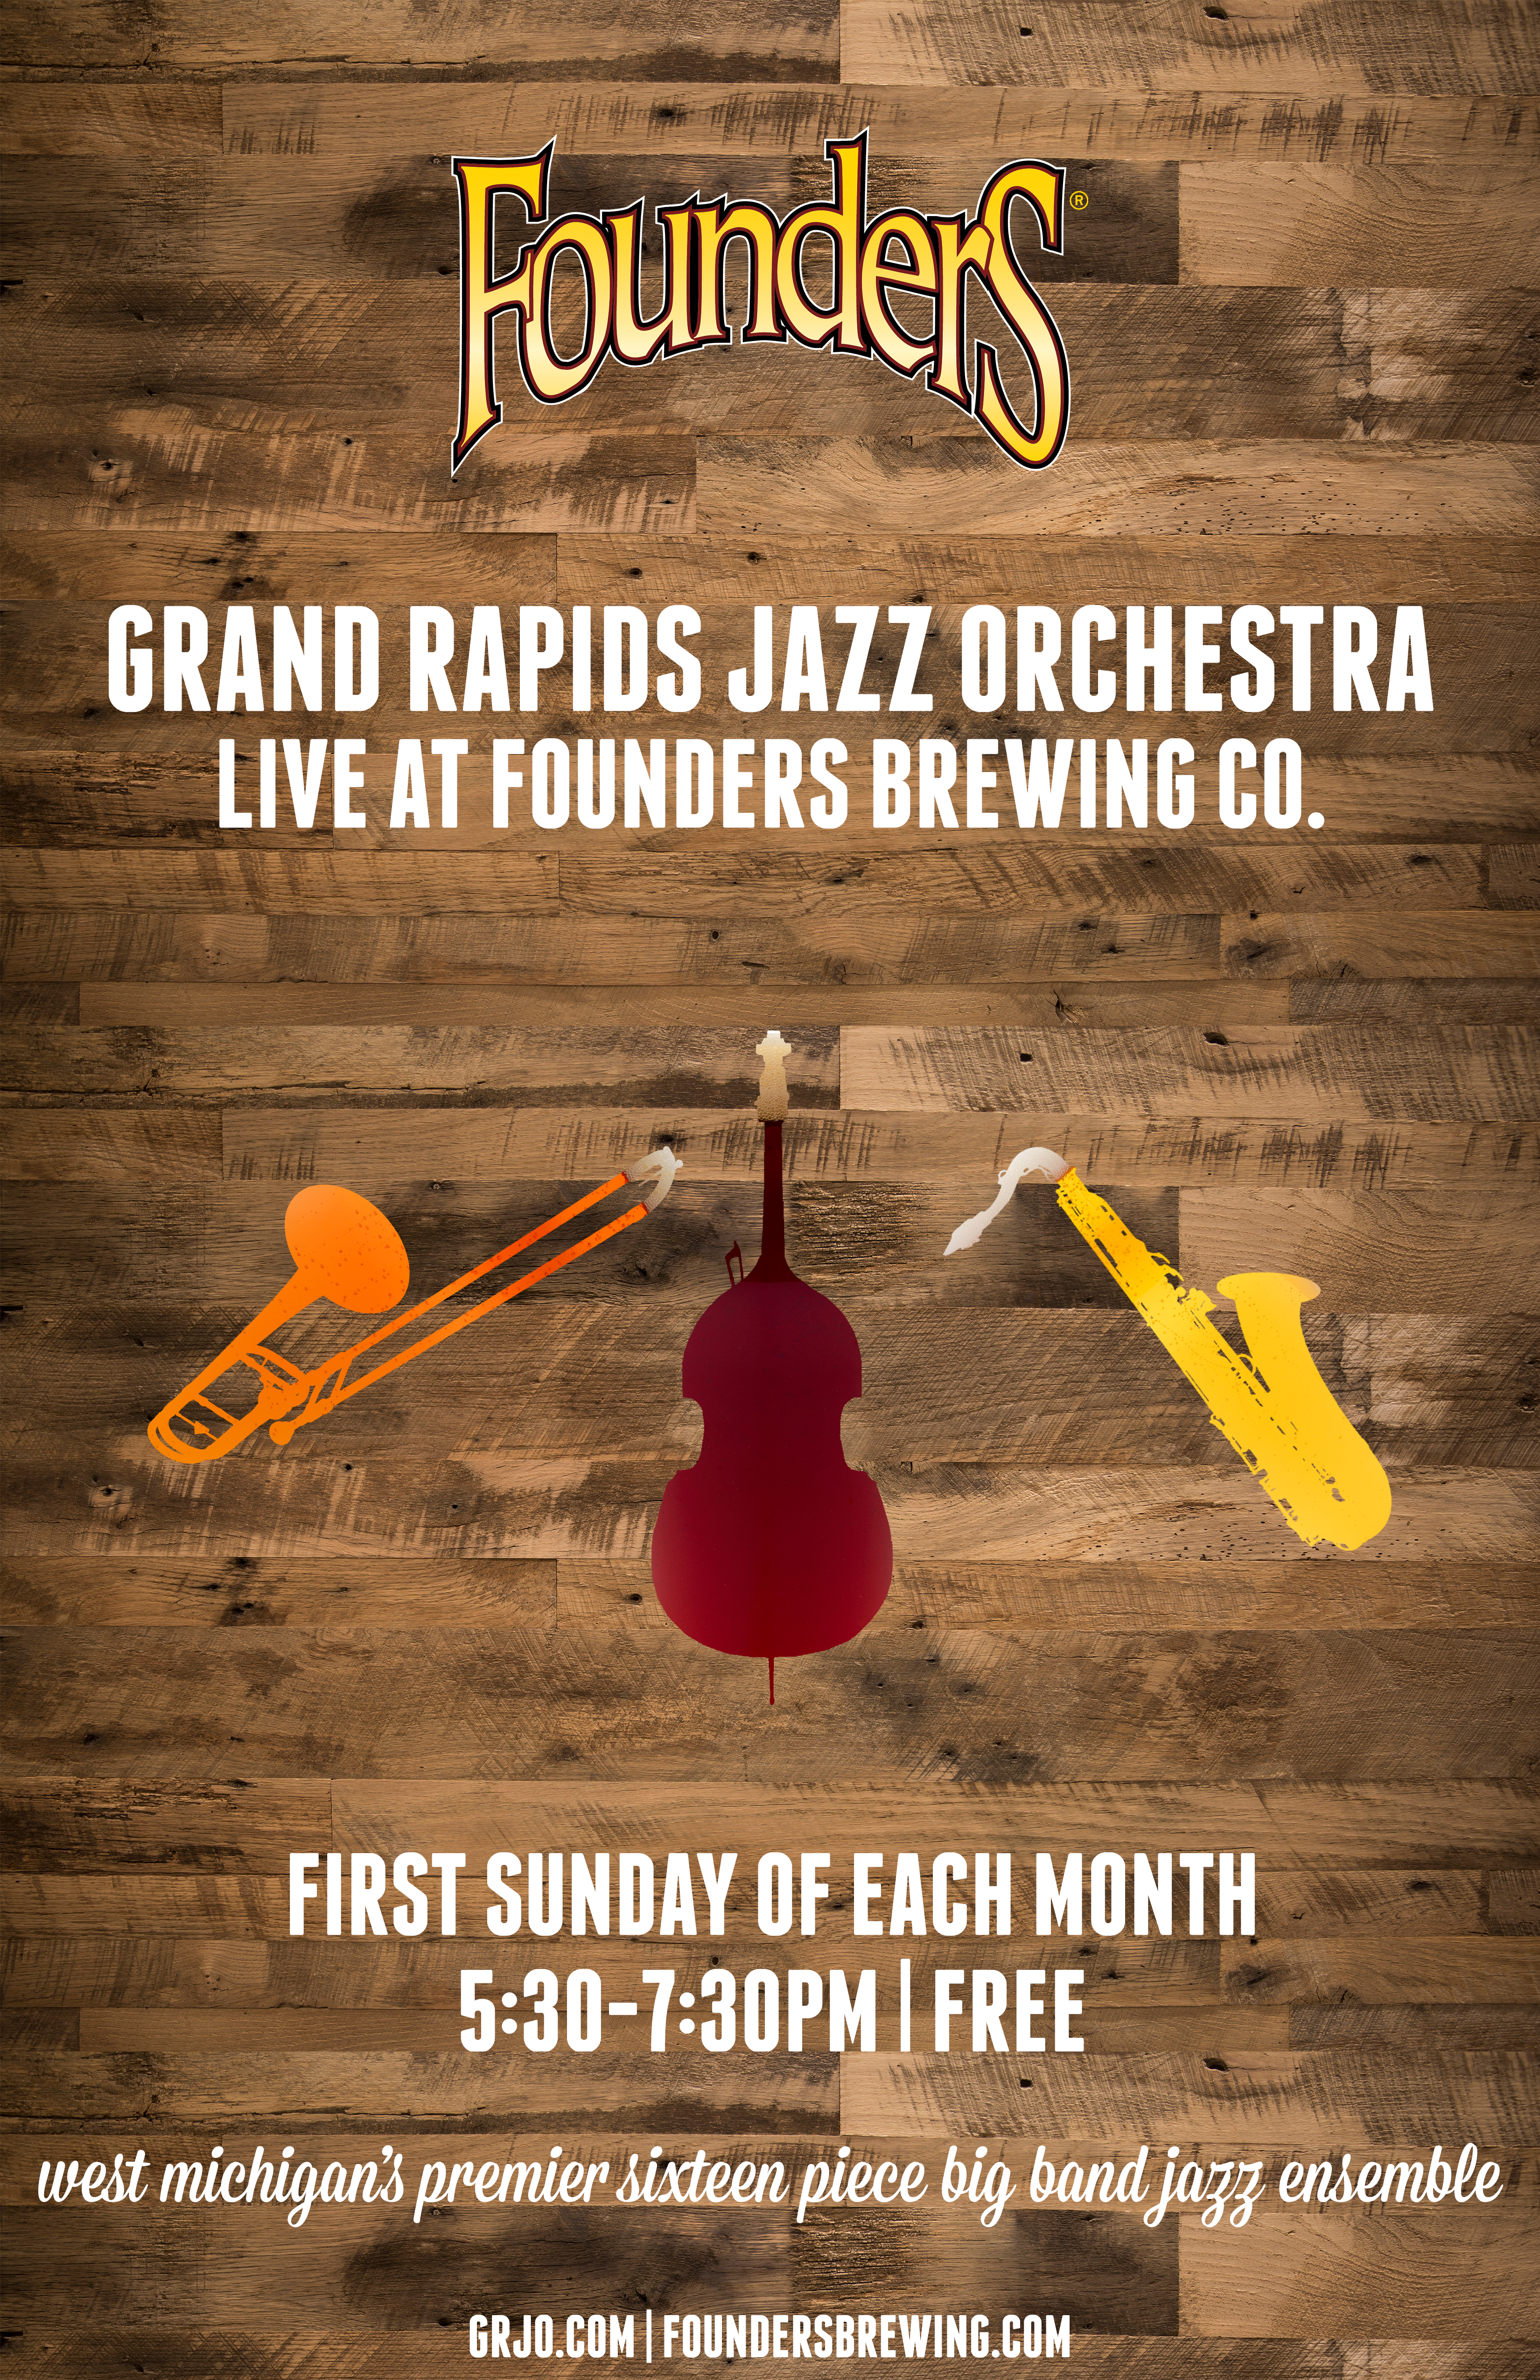 Founders Grand Rapids Jazz Orchestra event poster